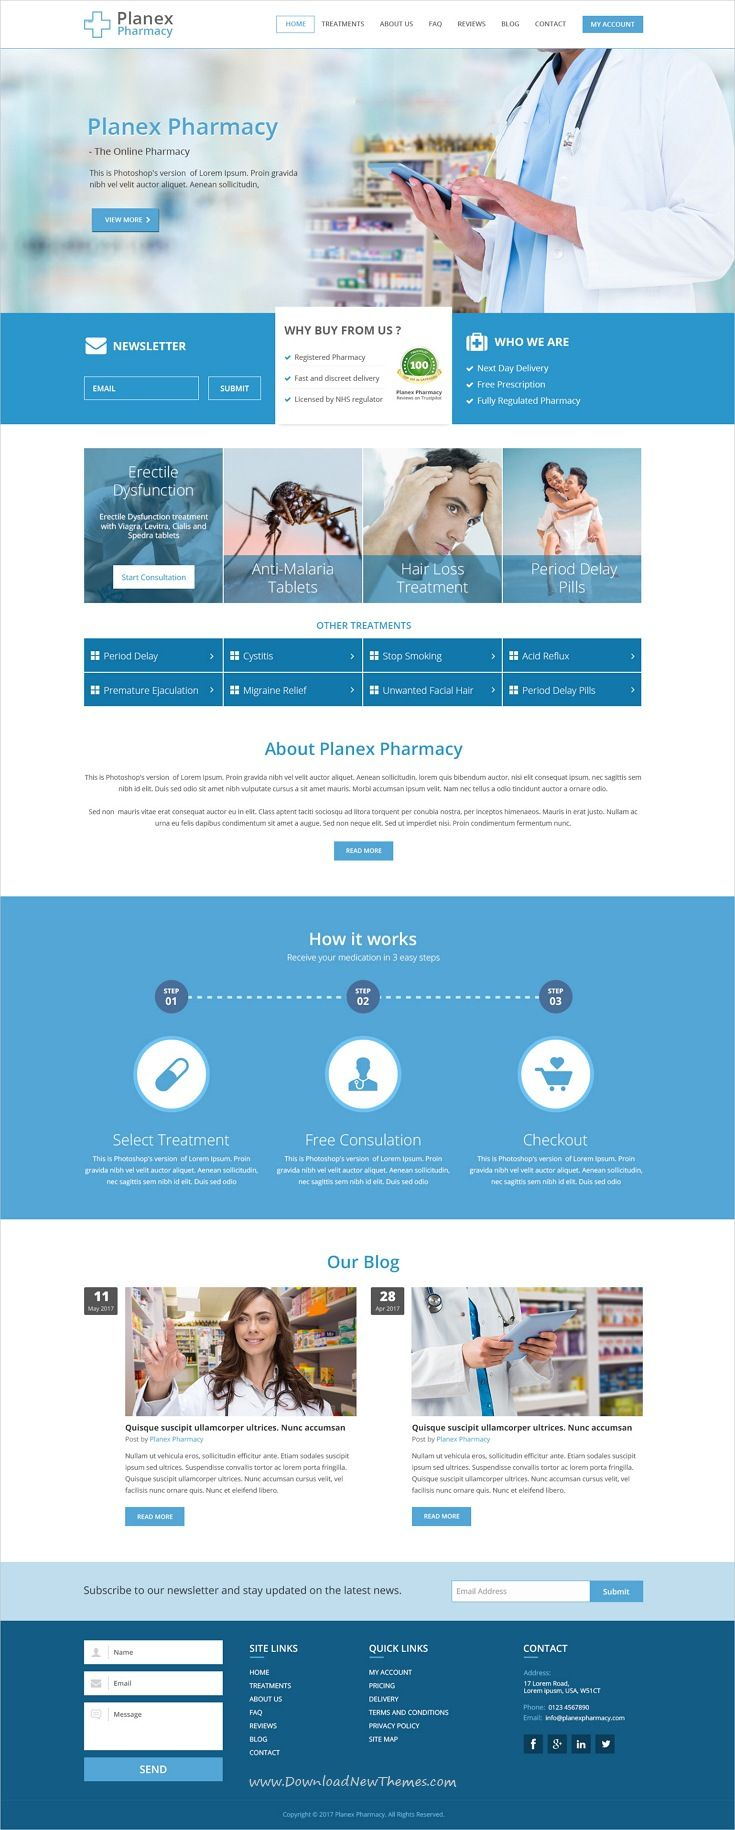 planex pharmacy is clean and modern psd template for medical